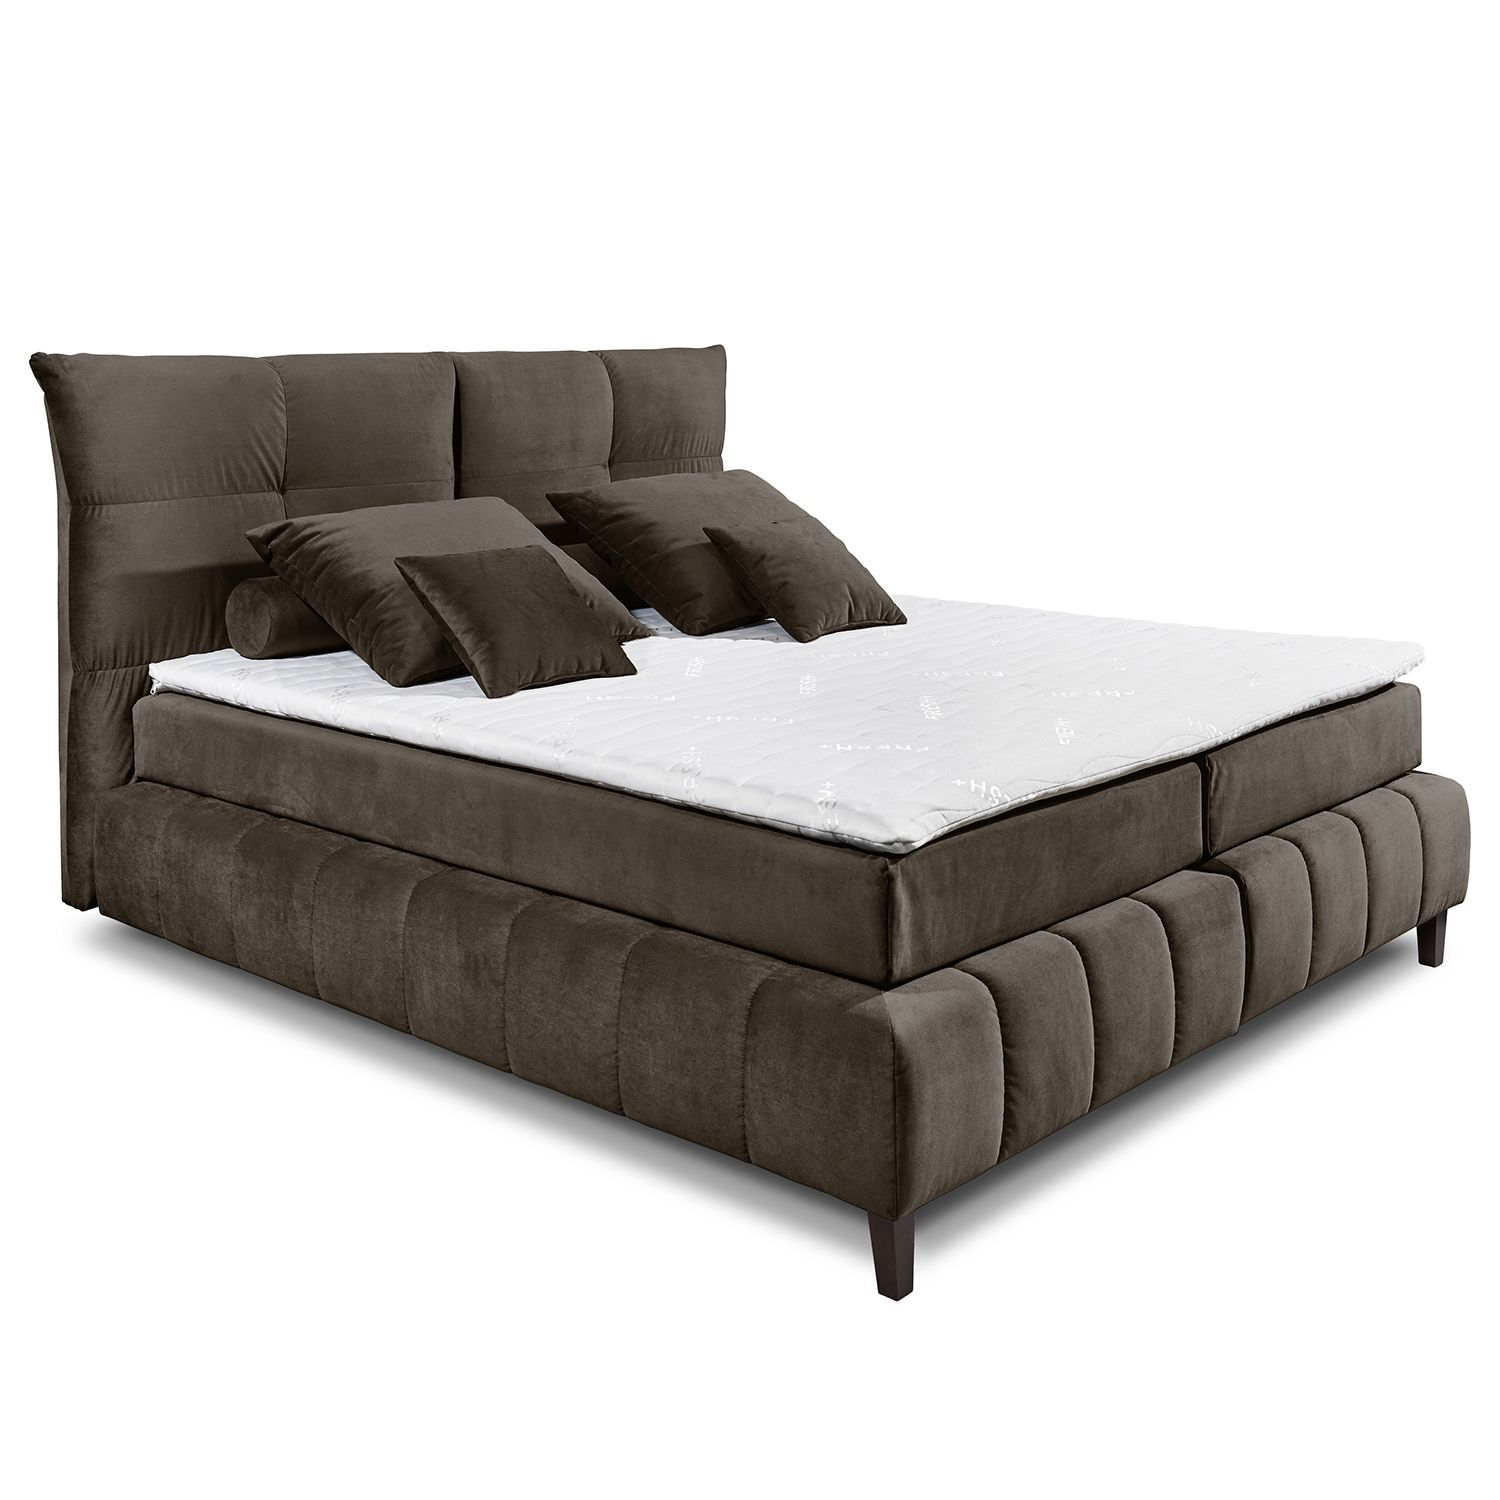 Bett 90x200 Buche Home24 Boxspringbett Norias Inkl Topper In 2019 Betten Bed